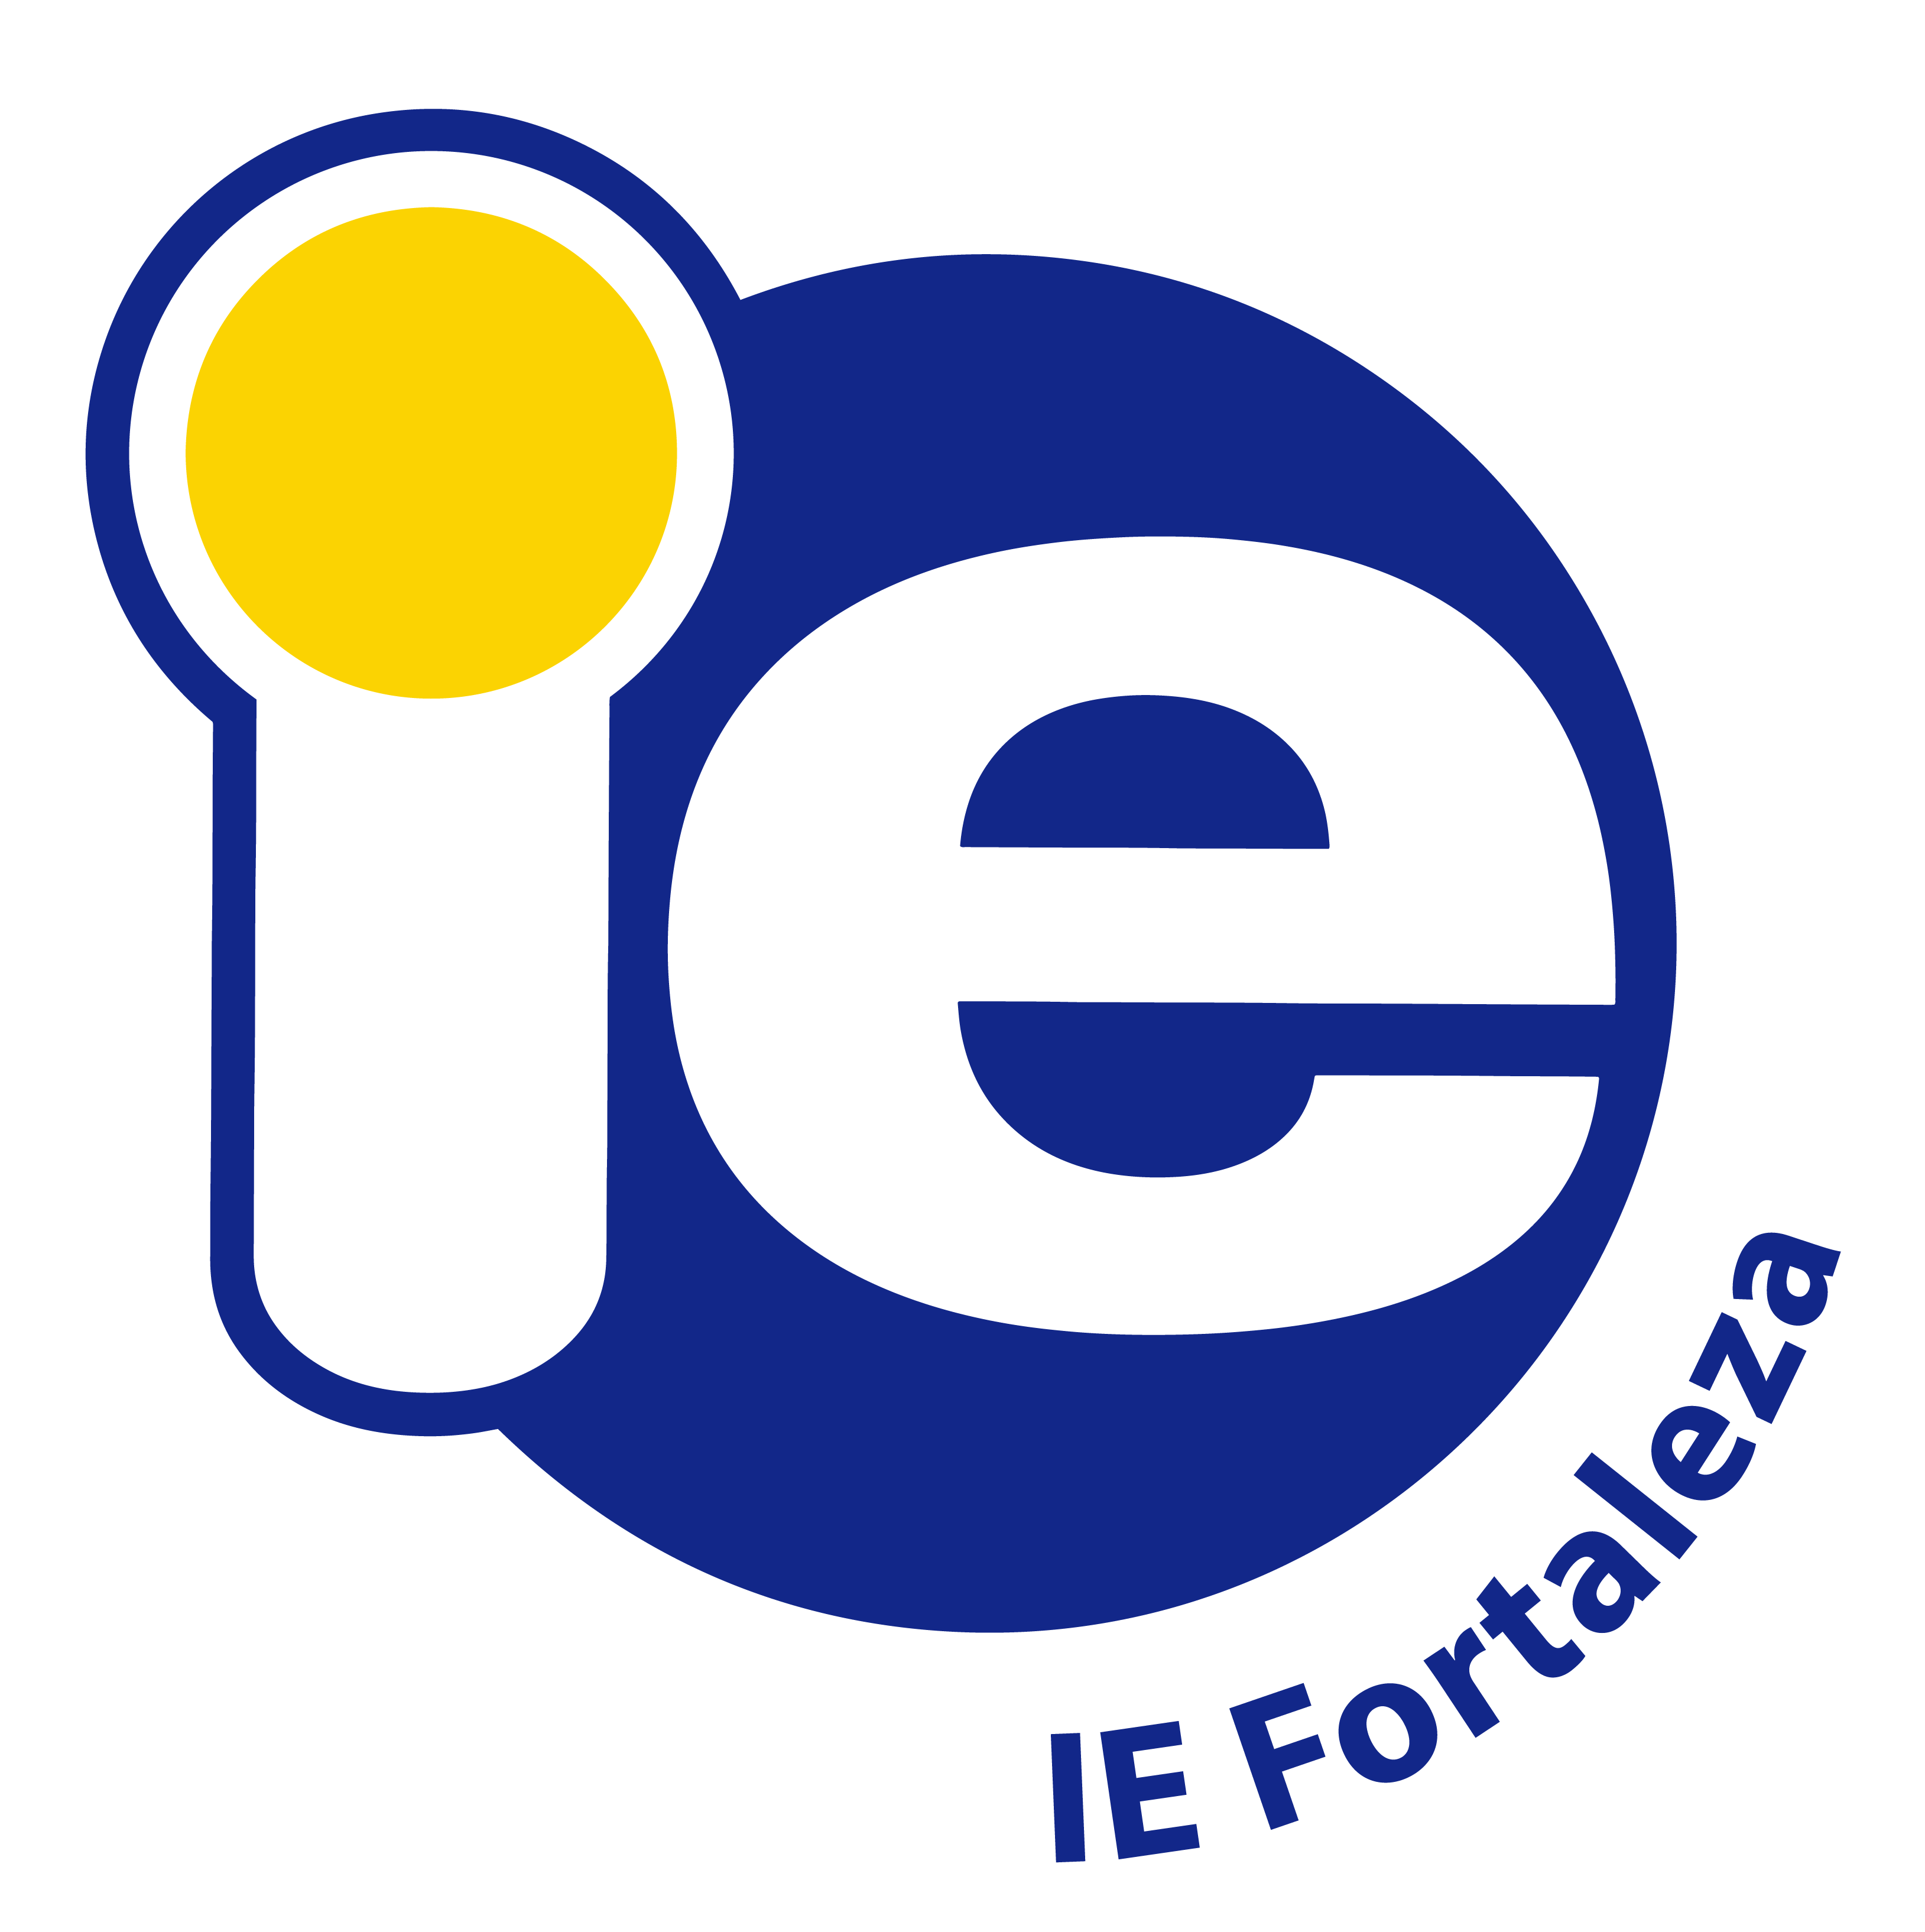 IE INTERCÂMBIO